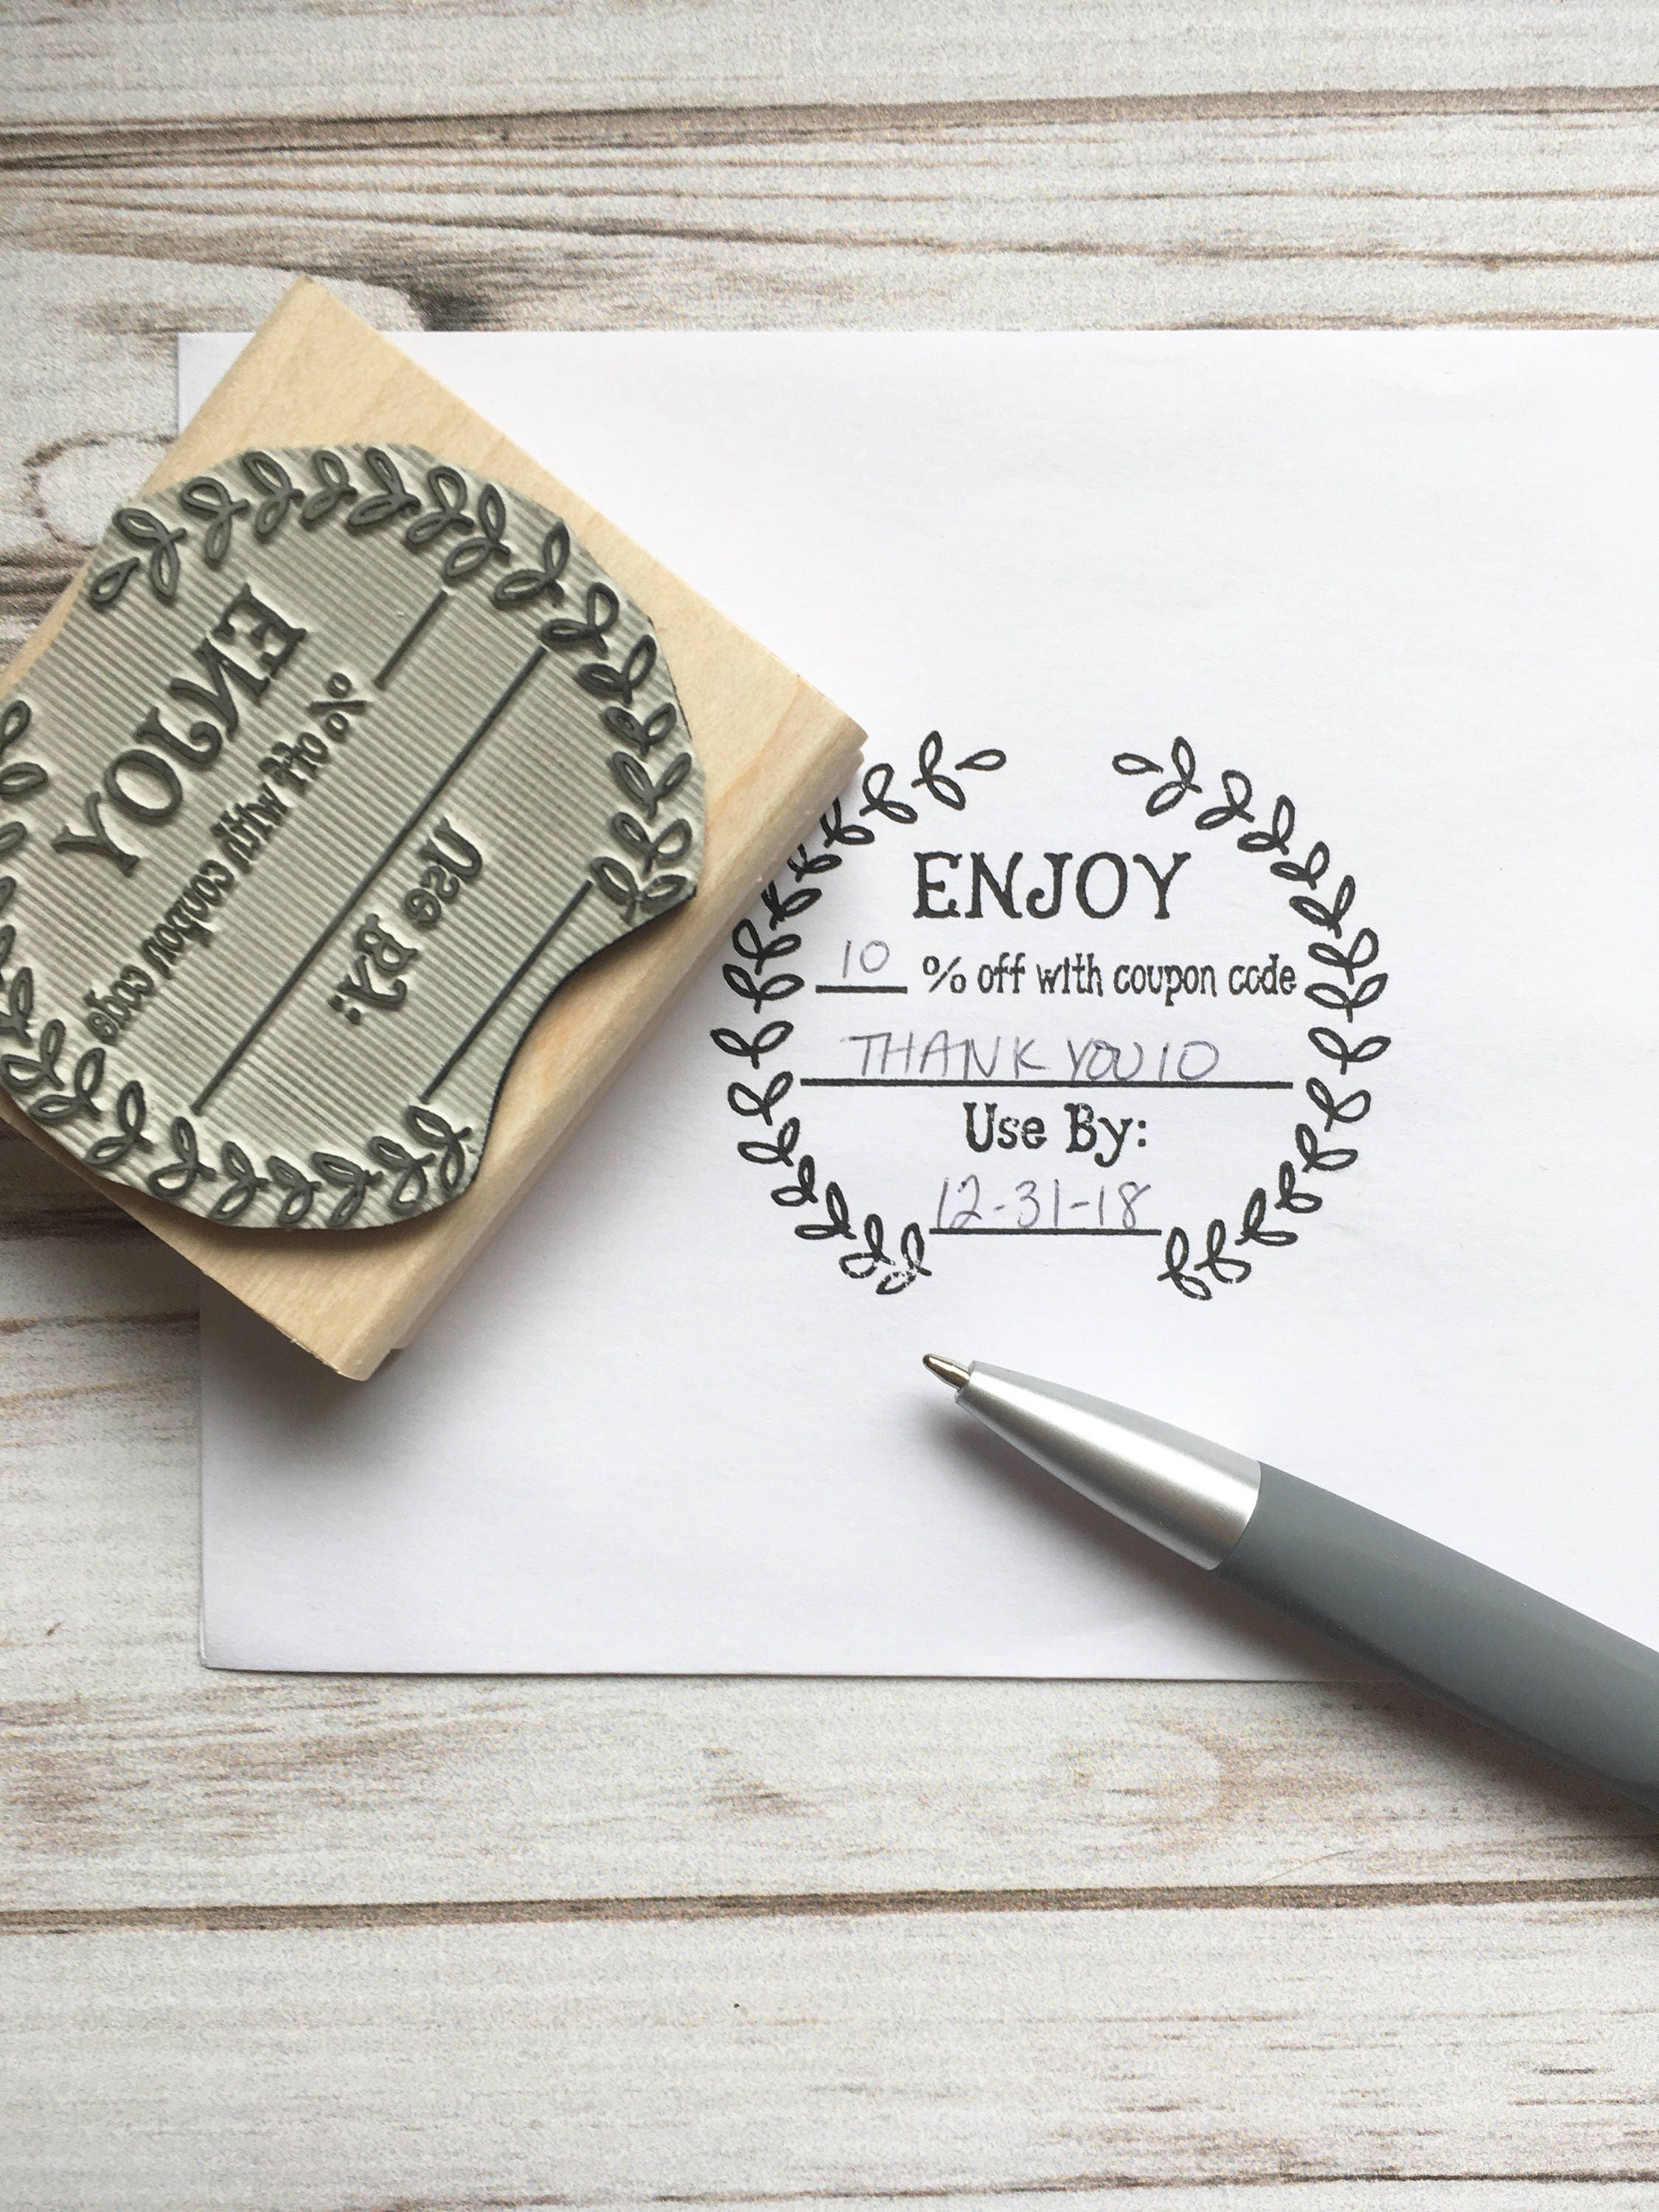 The stamp maker coupon code